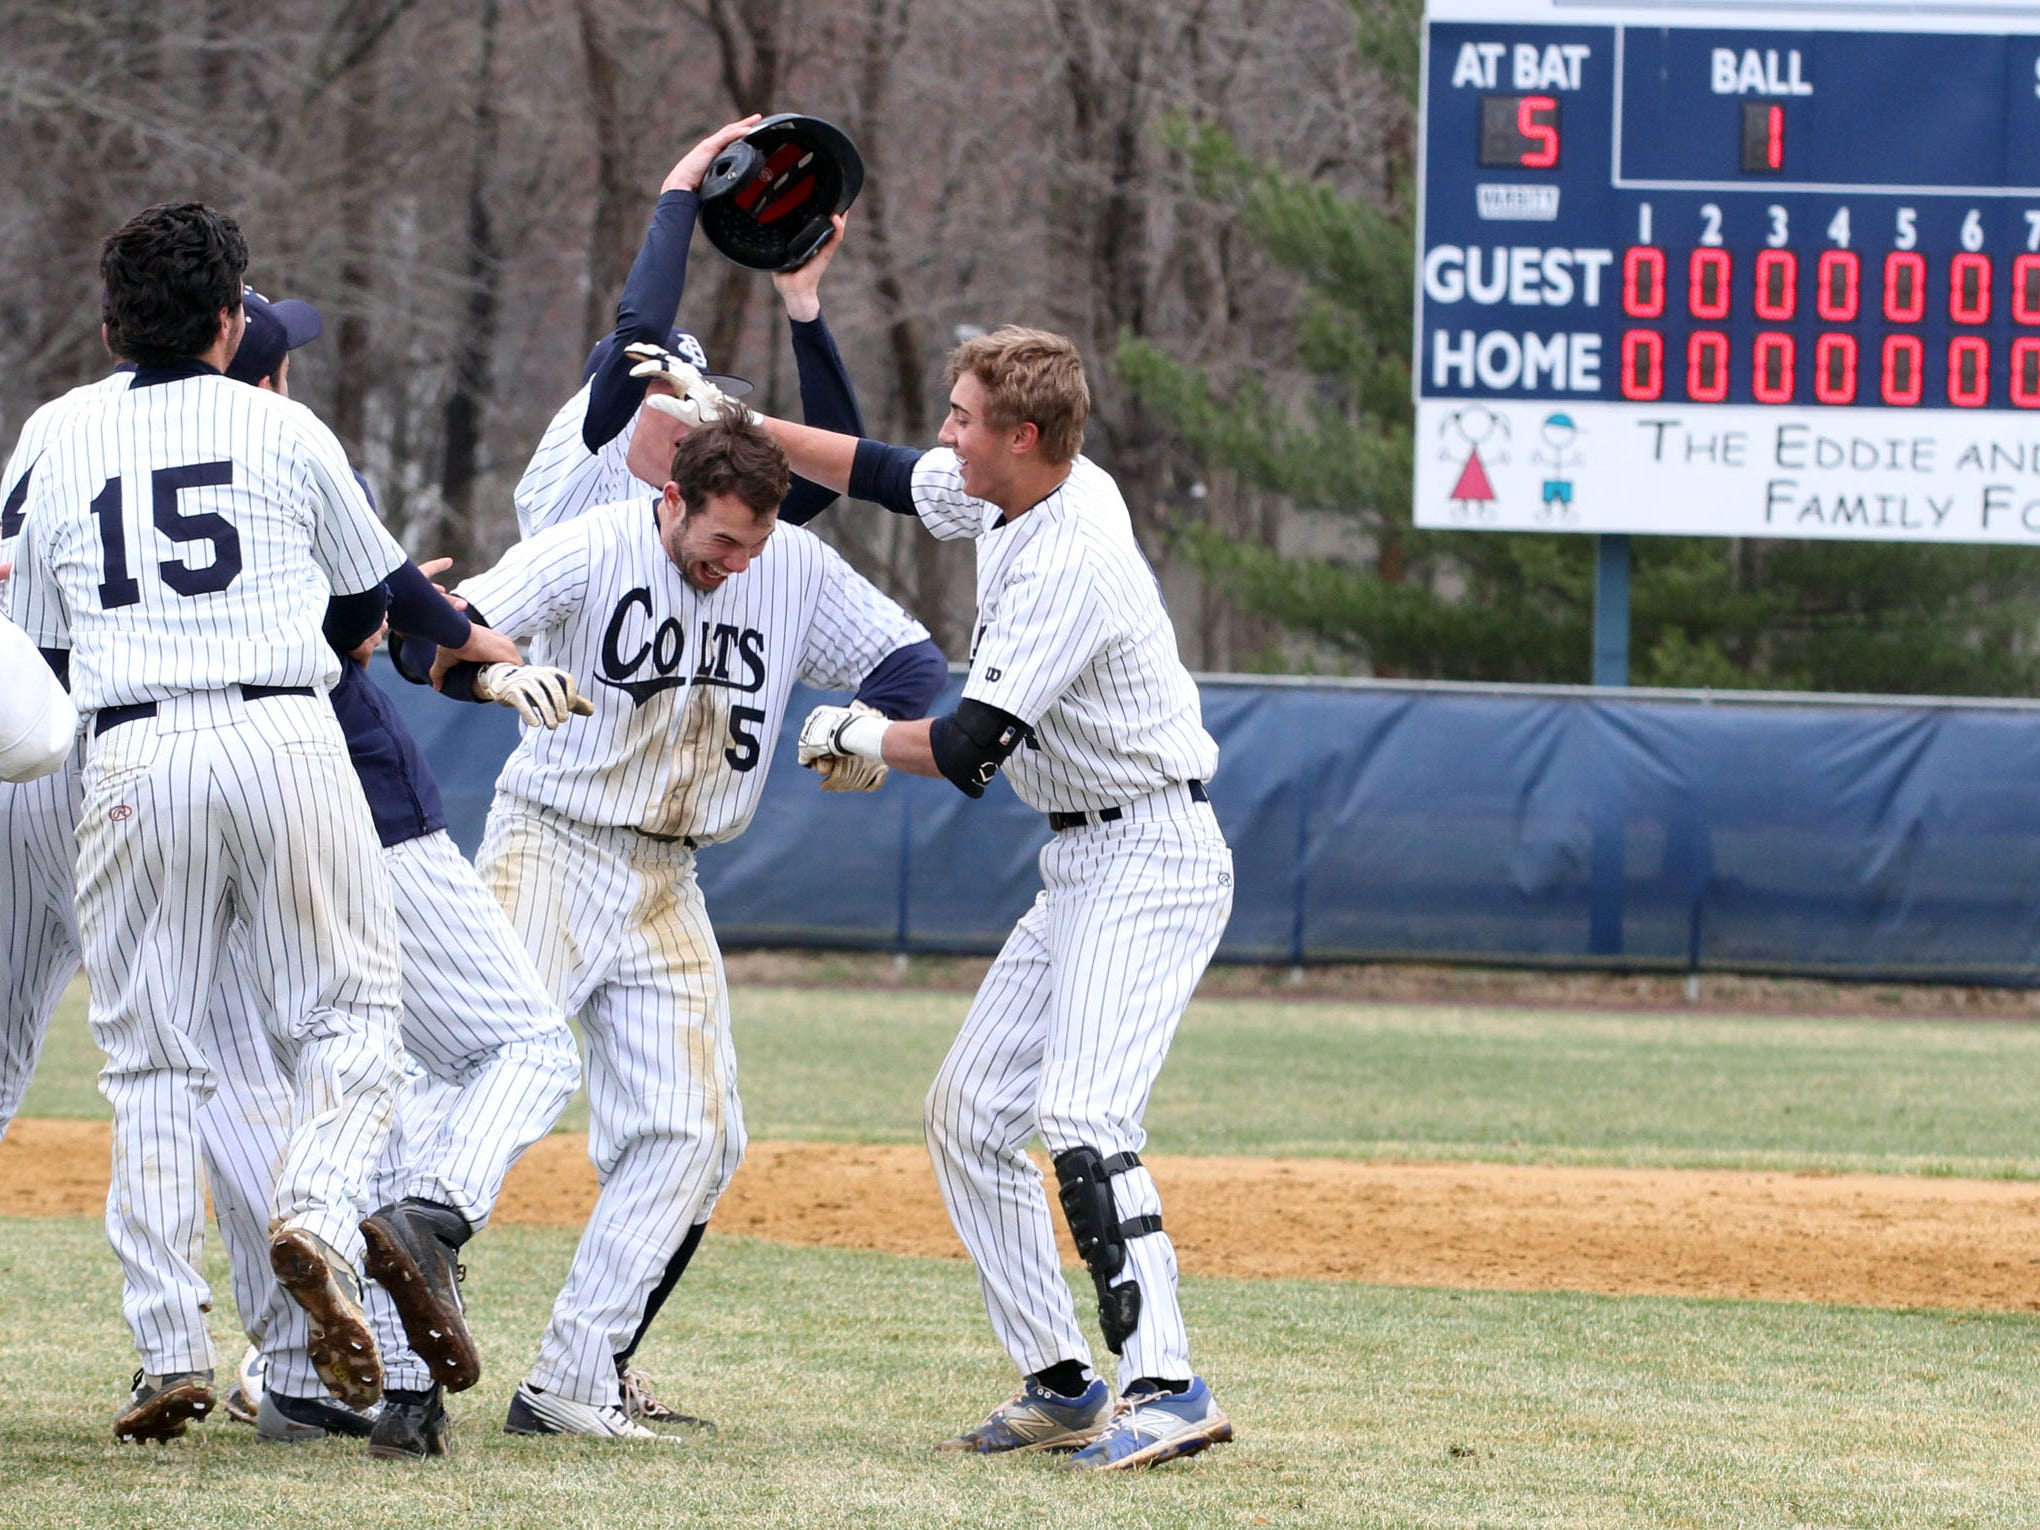 Christian Brothers Academy's Will Morgan (No. 5) is congratulated by his teammates after he drove in the winning run in the bottom of the eighth inning of CBA's 1-0 win over Marlboro on Thursday